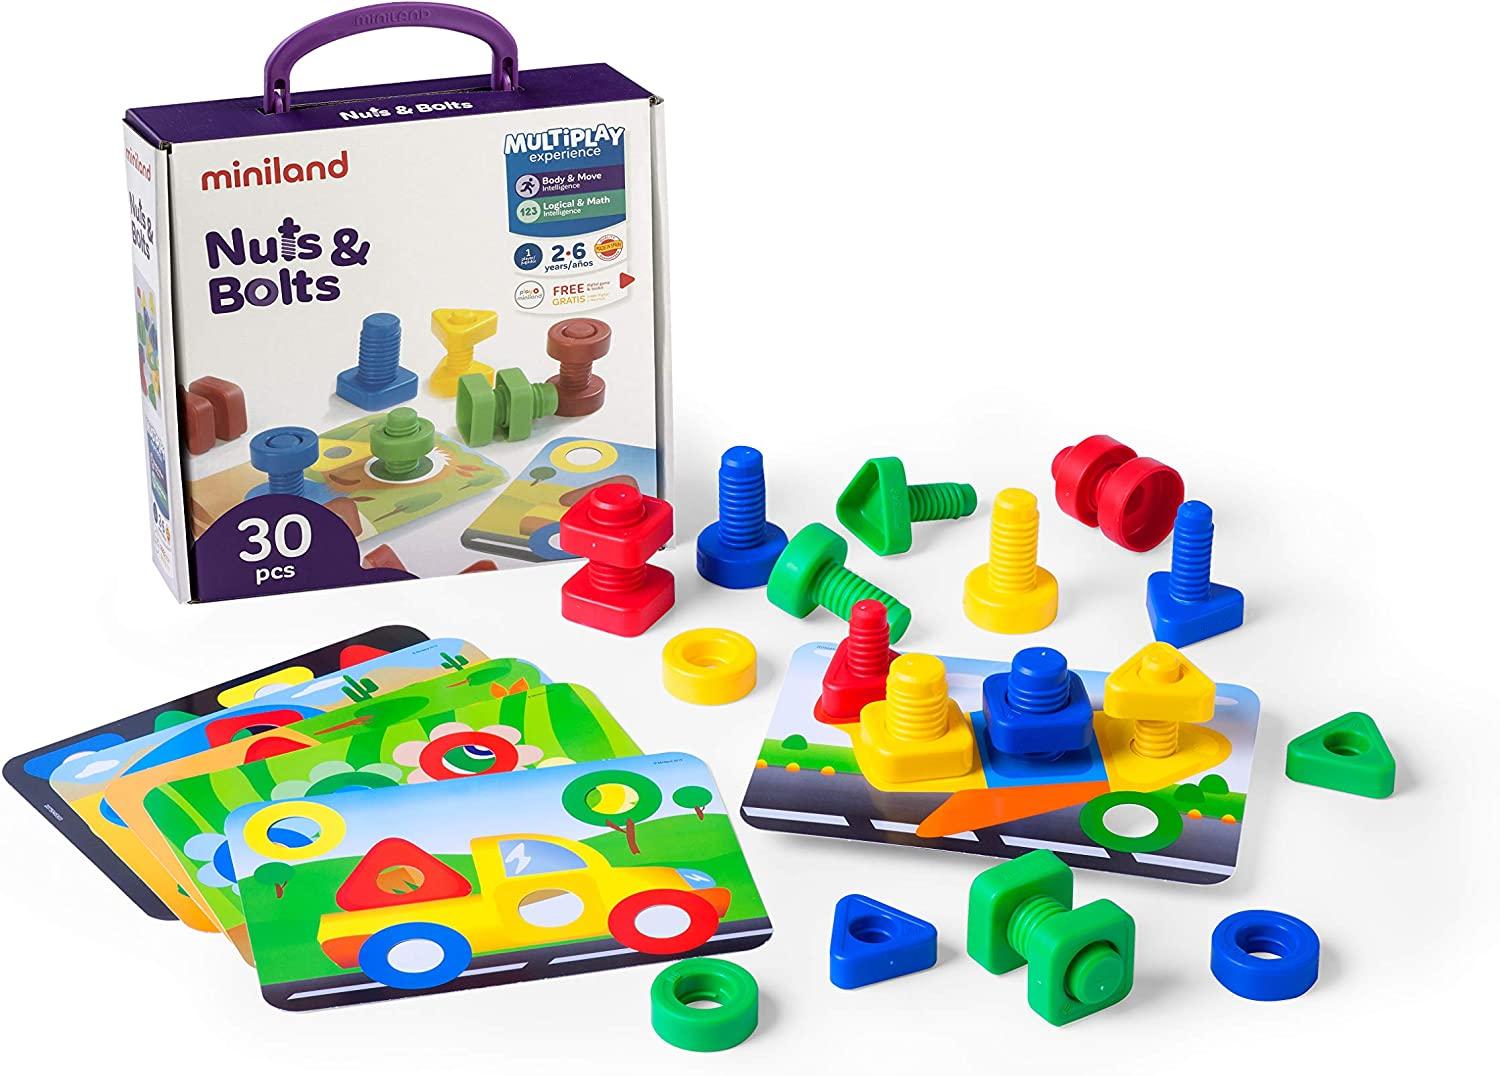 Miniland Nuts /& Bolts Learning Playset